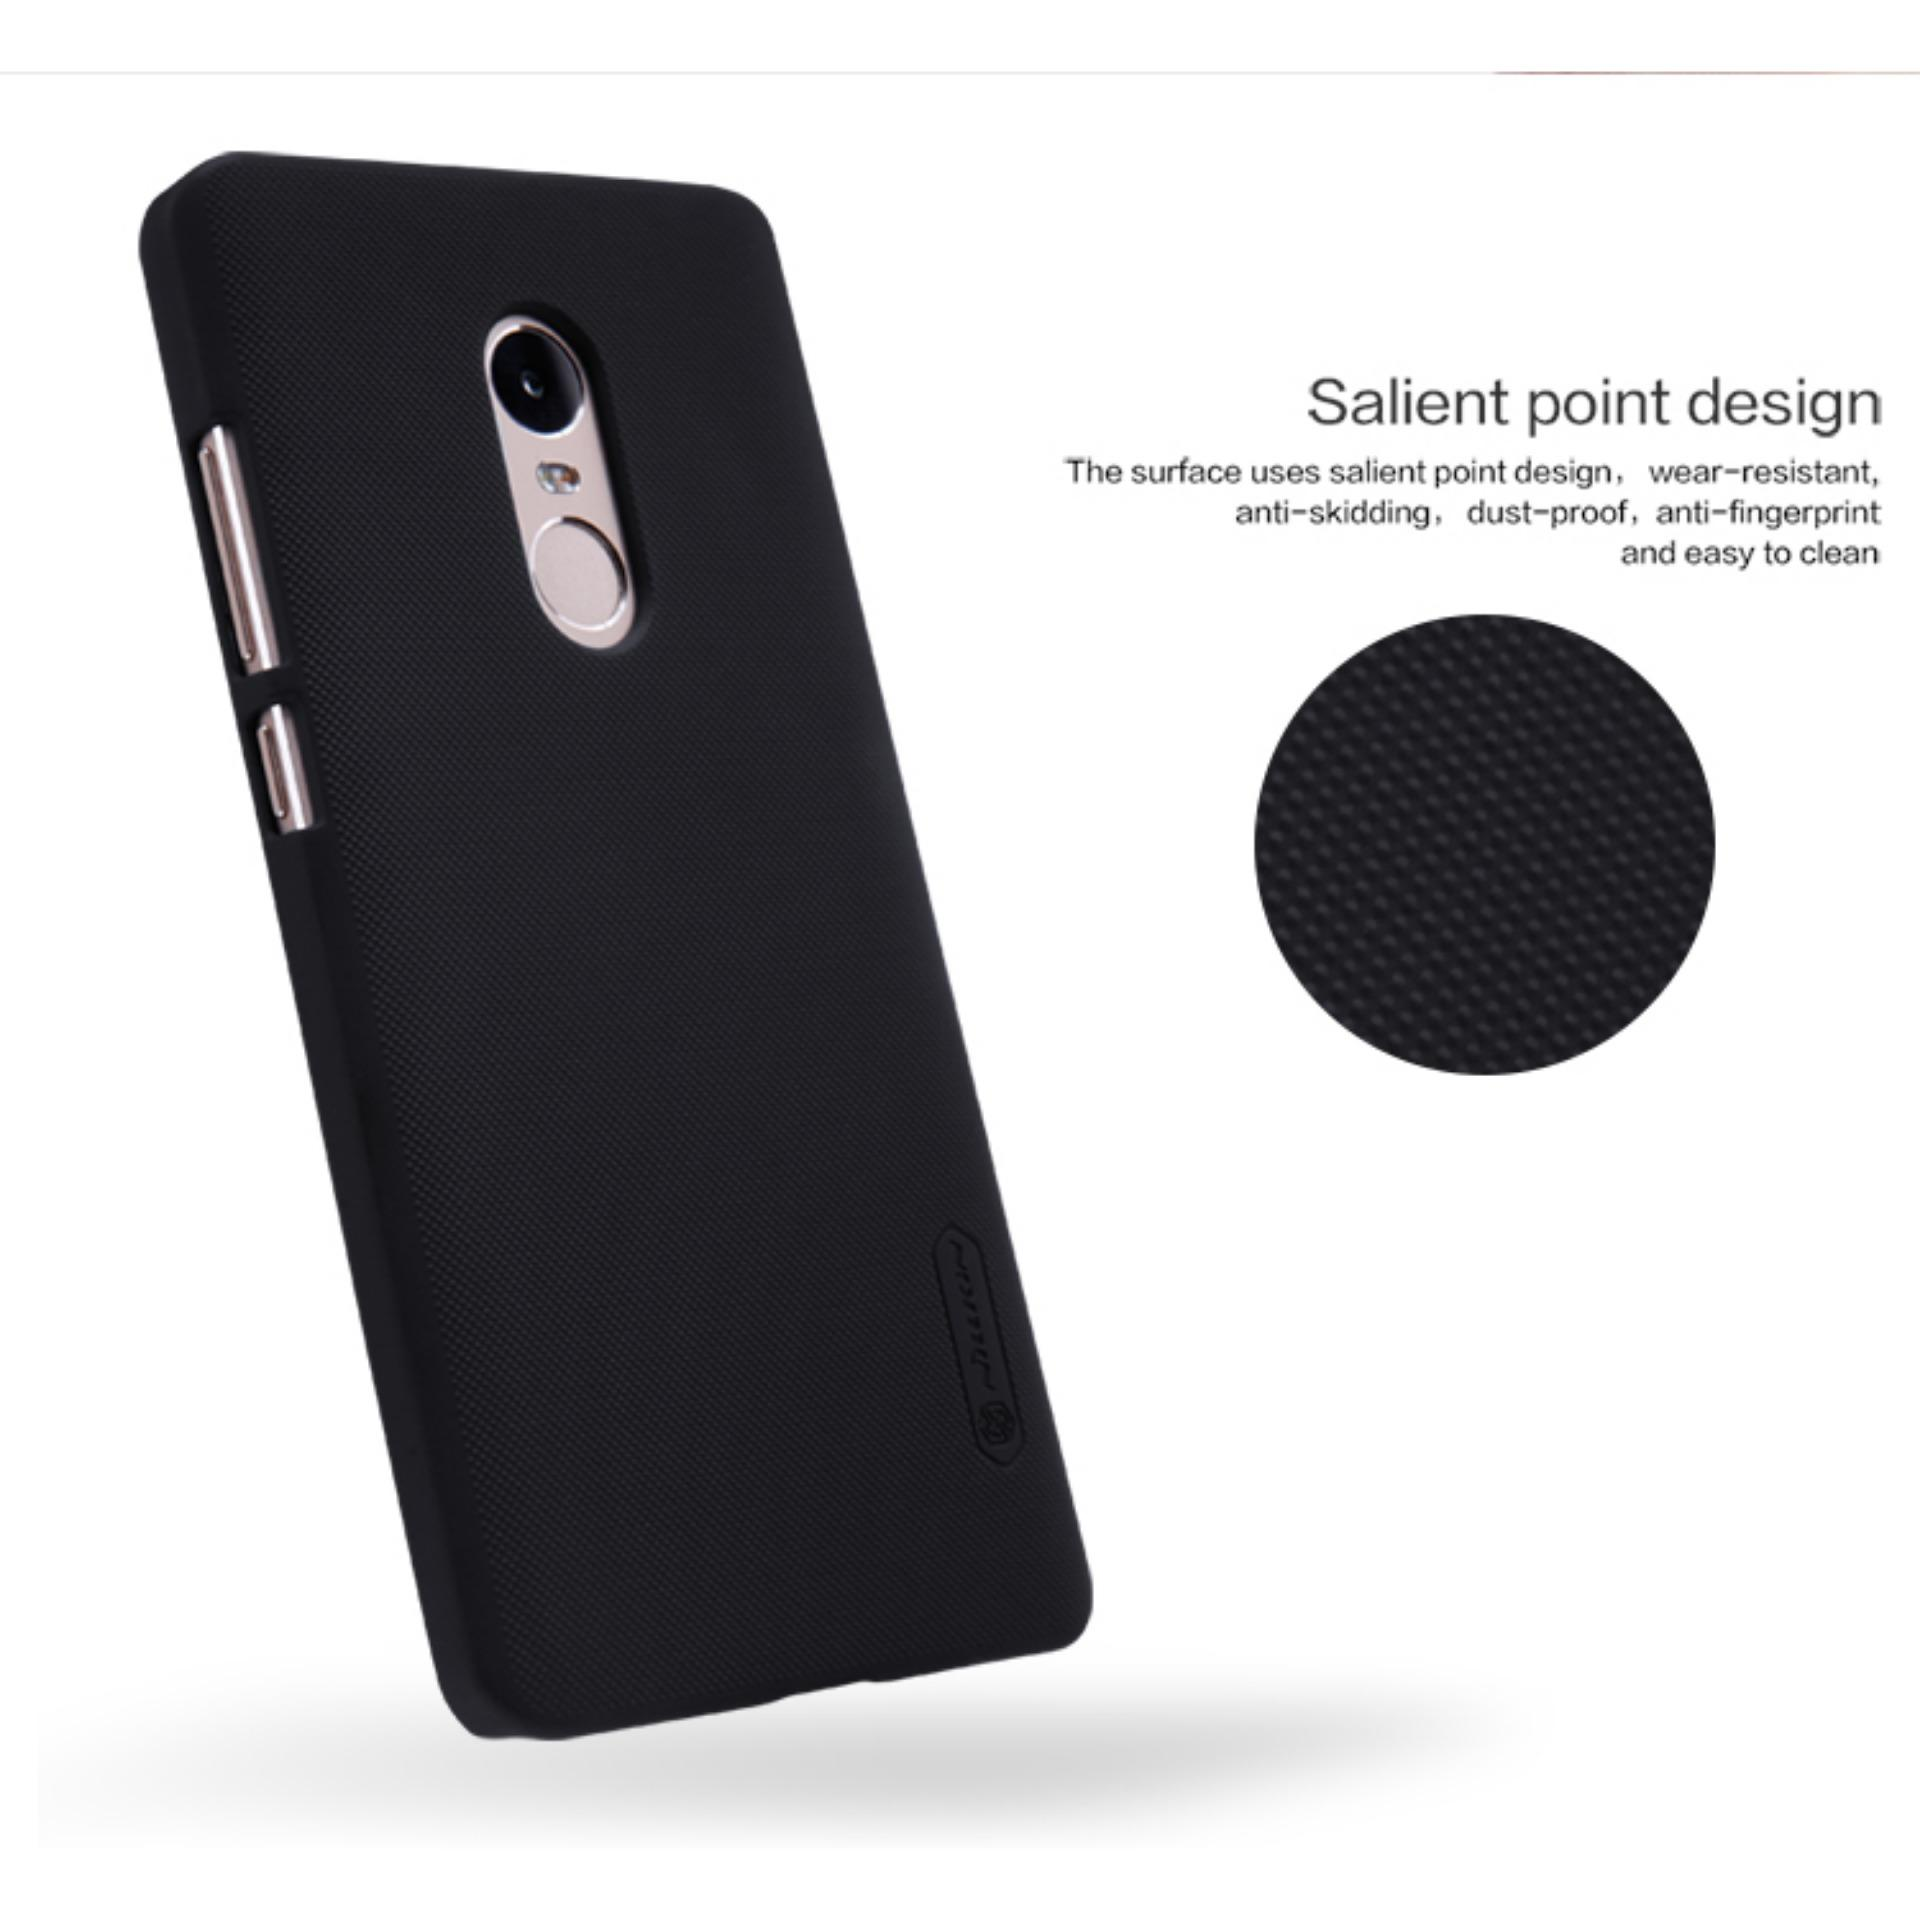 Detail Gambar Xiaomi Redmi Note 4 Case Redmi Note 4 Cover Nillkin Frosted Shield Case For Xiaomi Redmi Note 4 Pro Prime 5.5 inch + Free L1R1 Fire Button ...